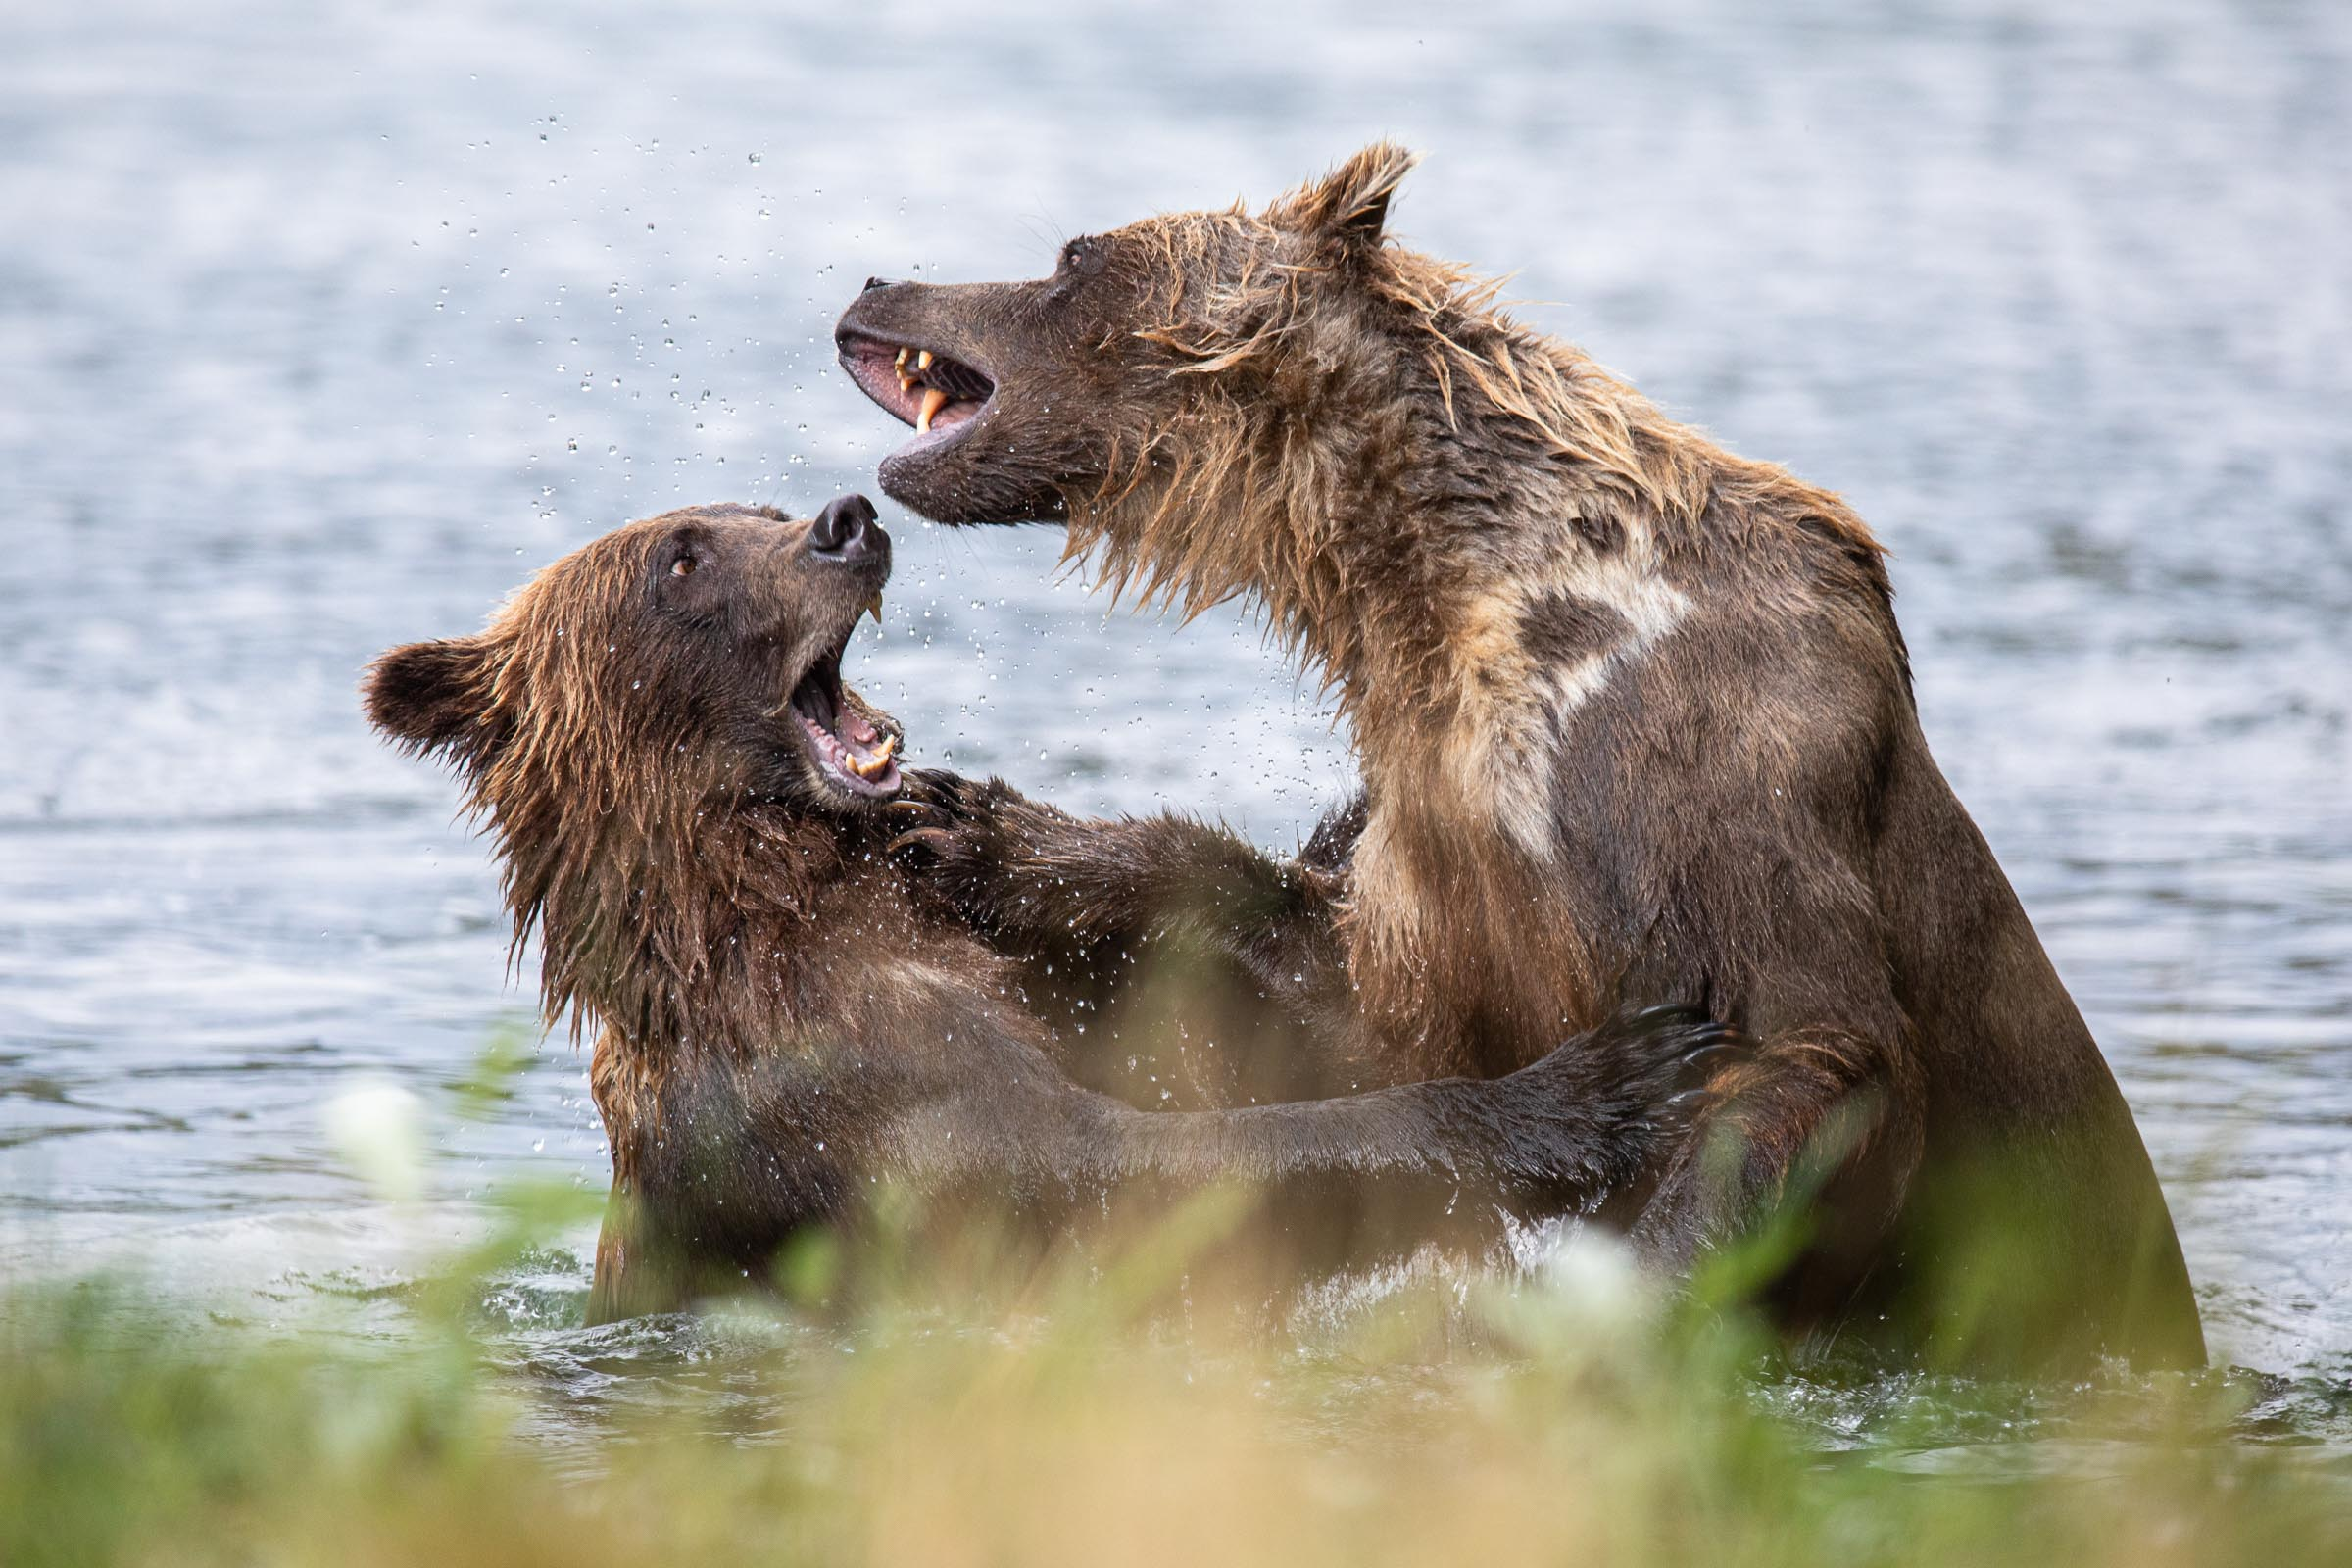 Grizzly Bear sparring